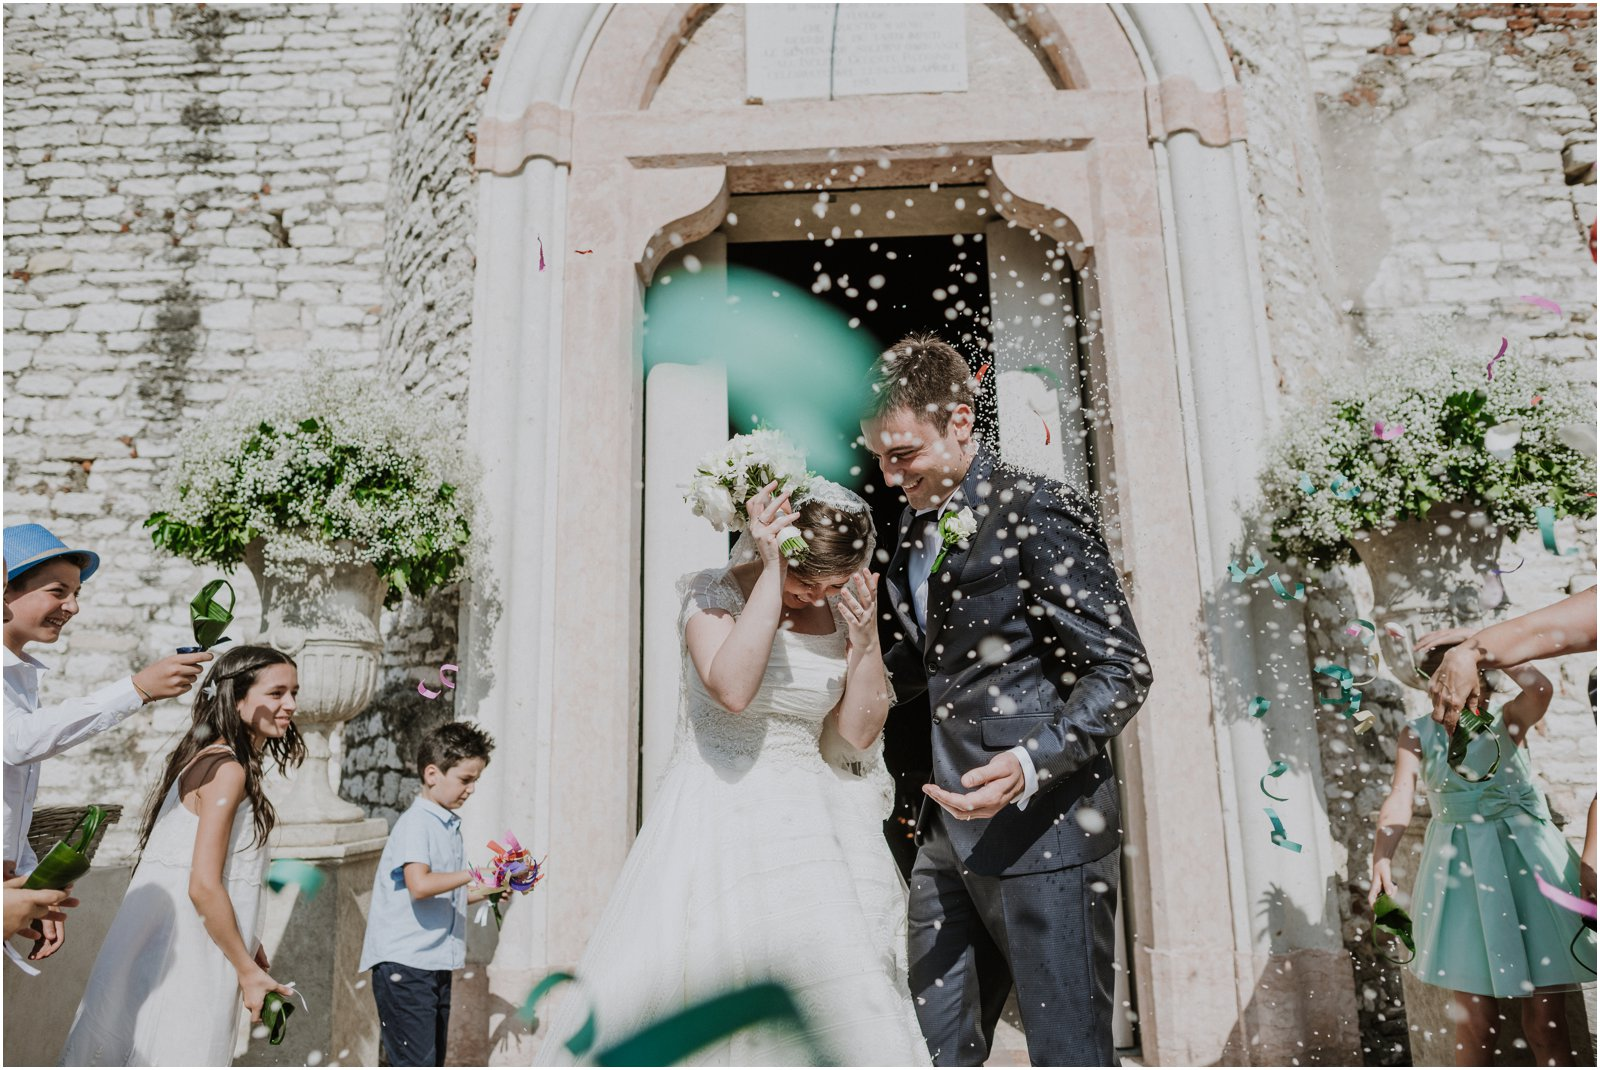 veronasposi foto e video matrimonio verona_0571